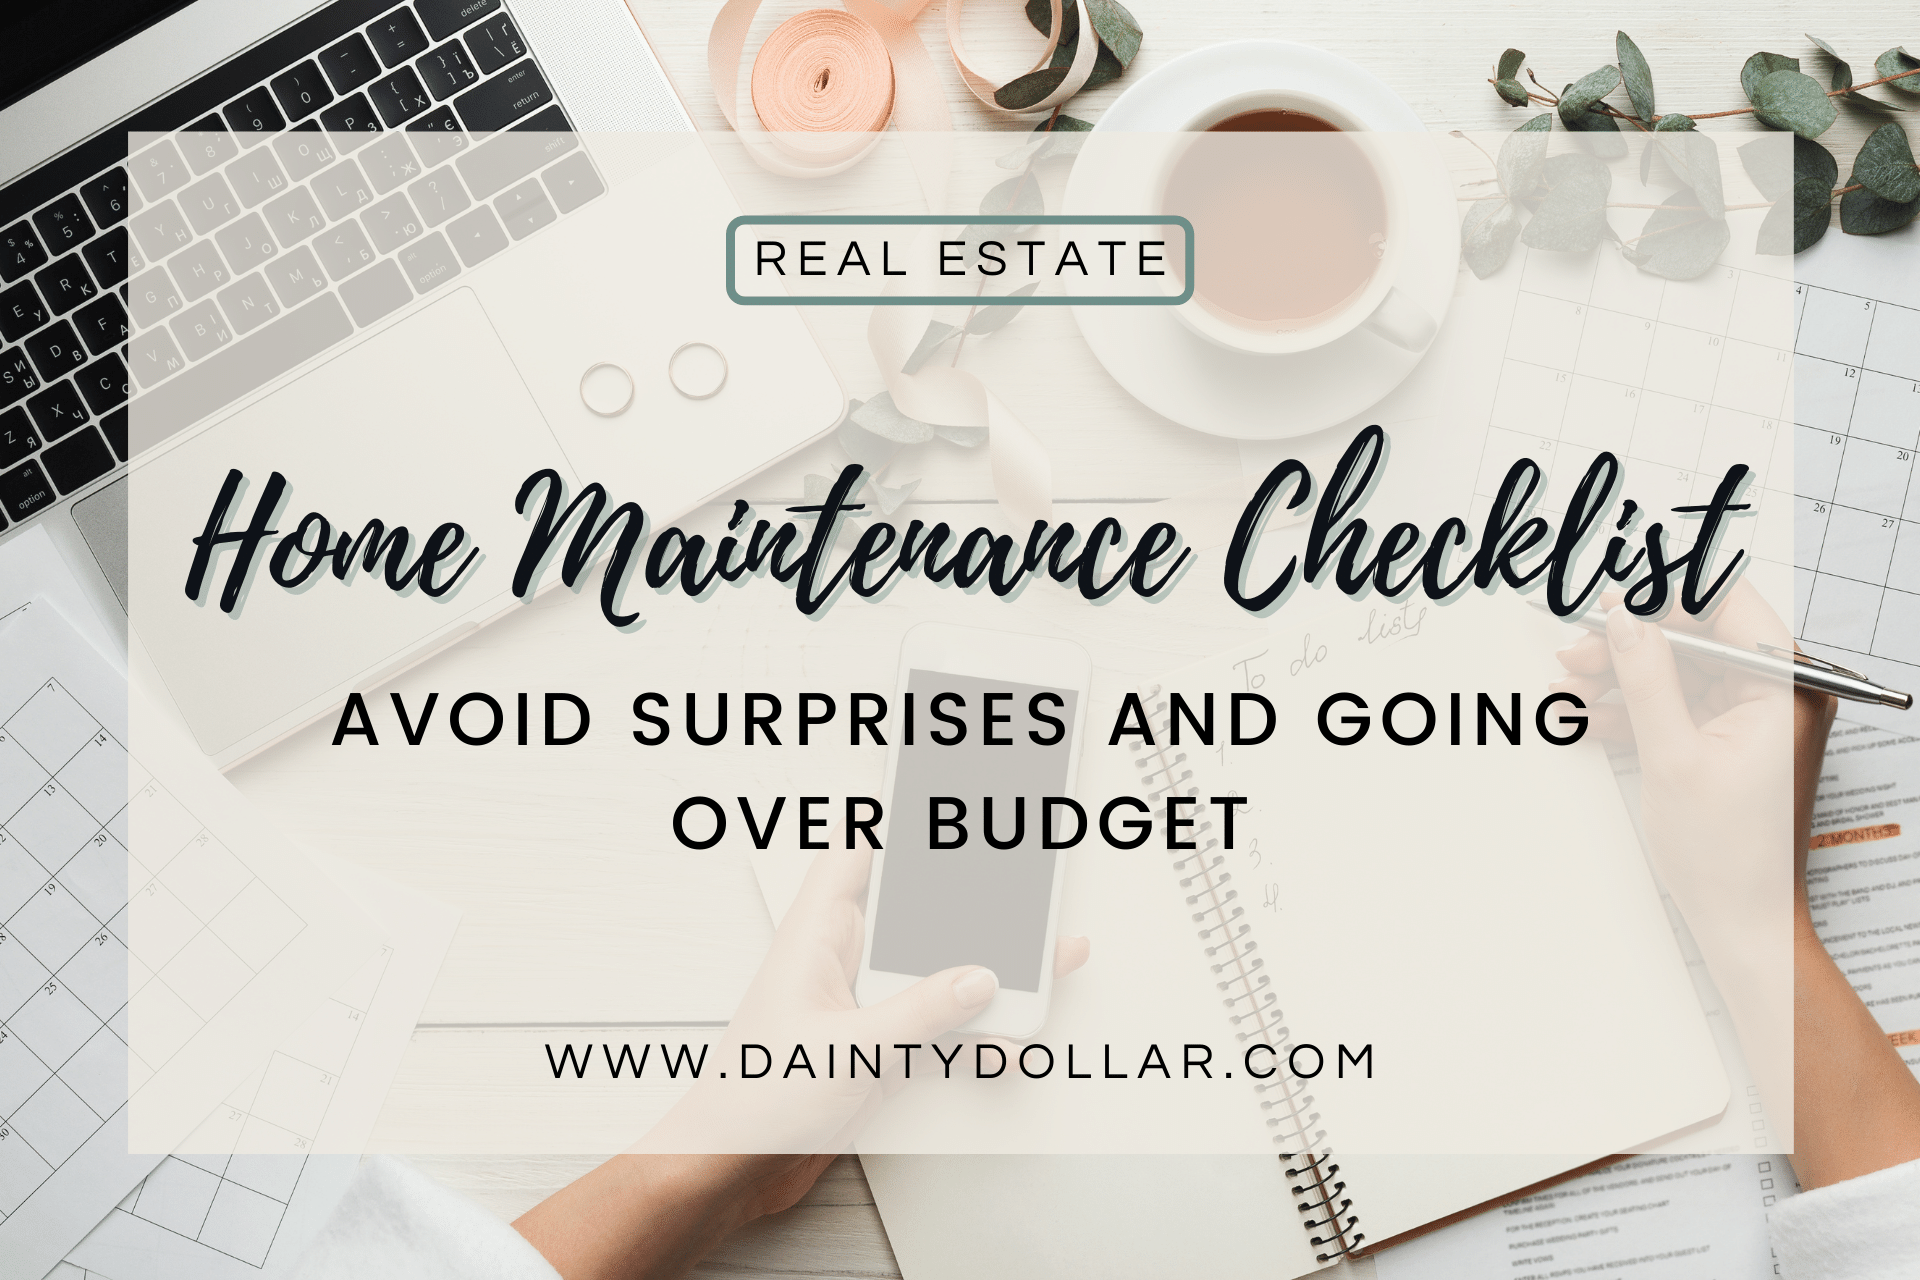 Home Maintenance Checklist - Avoiding Surprises and Going Over Budget - Dainty Dollar